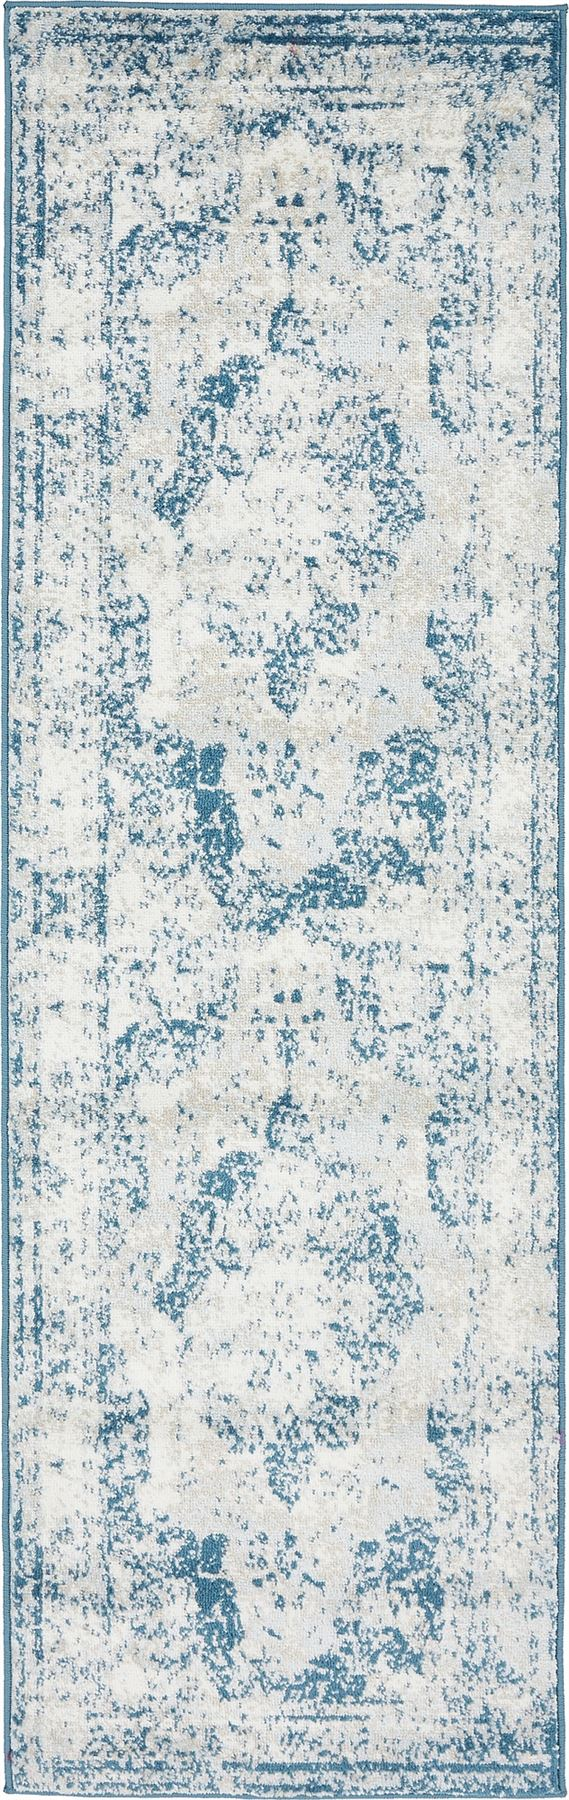 Traditional-Inspired-Persian-Faded-Transitional-Area-Rug-Multi-Color-ALL-SIZES thumbnail 16